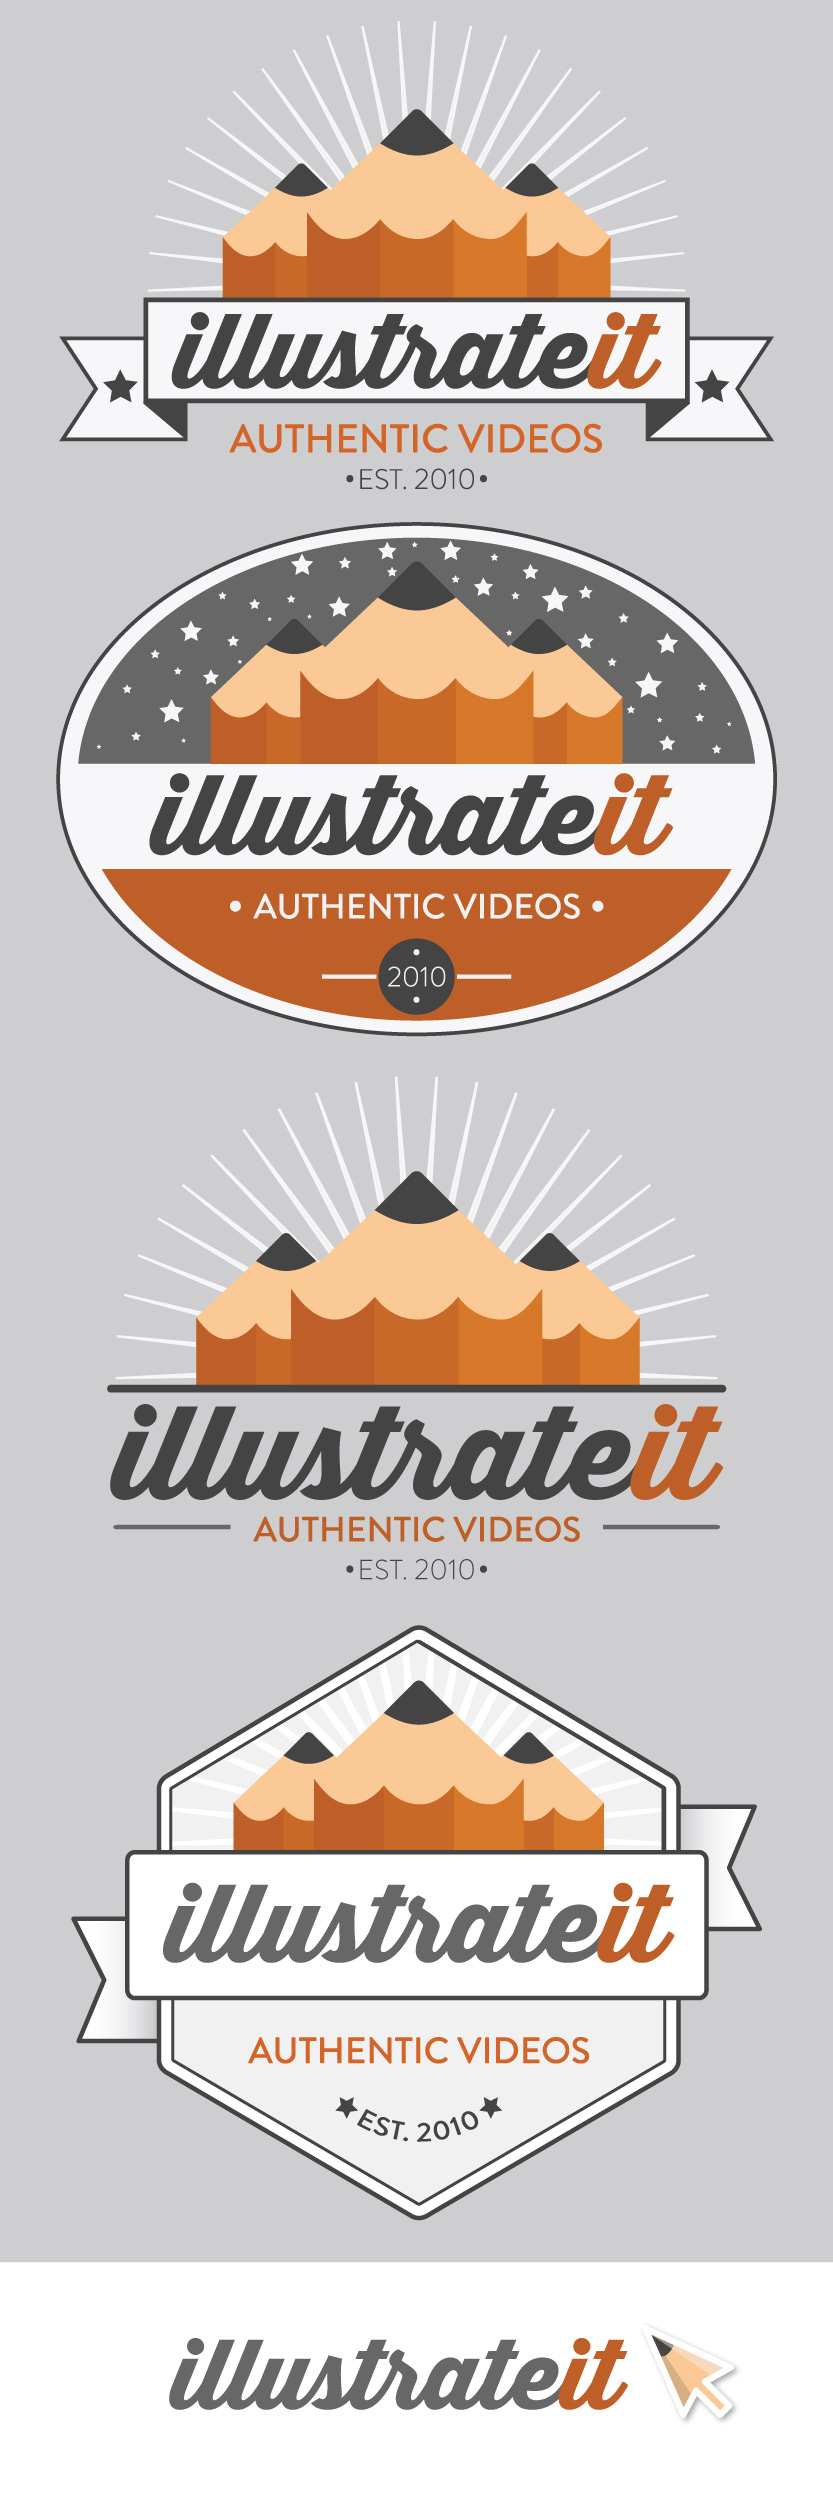 Illustrateit-Vintage-Logo-Set-FINAL.jpg